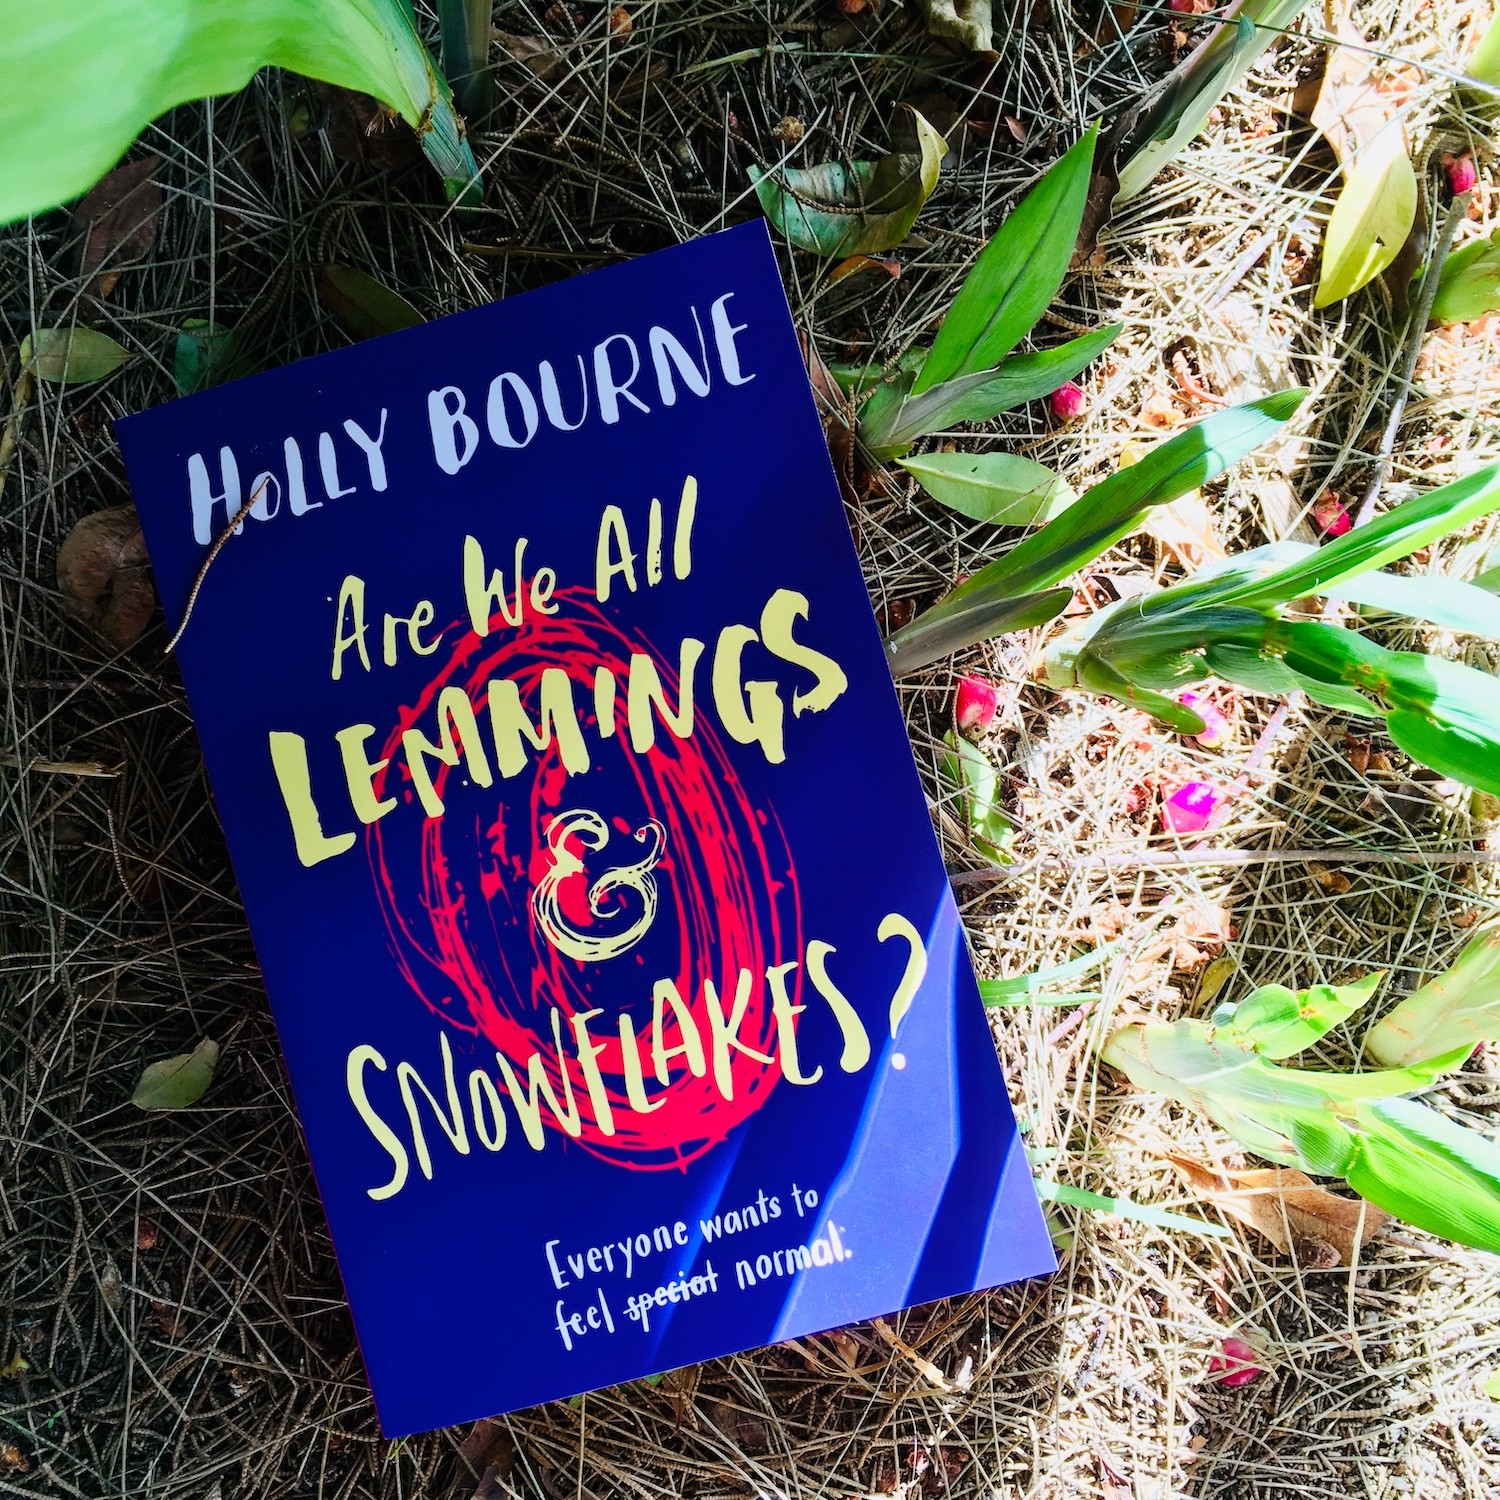 [giveaway] Are we all lemmings and snowflakes – Holly Bourne